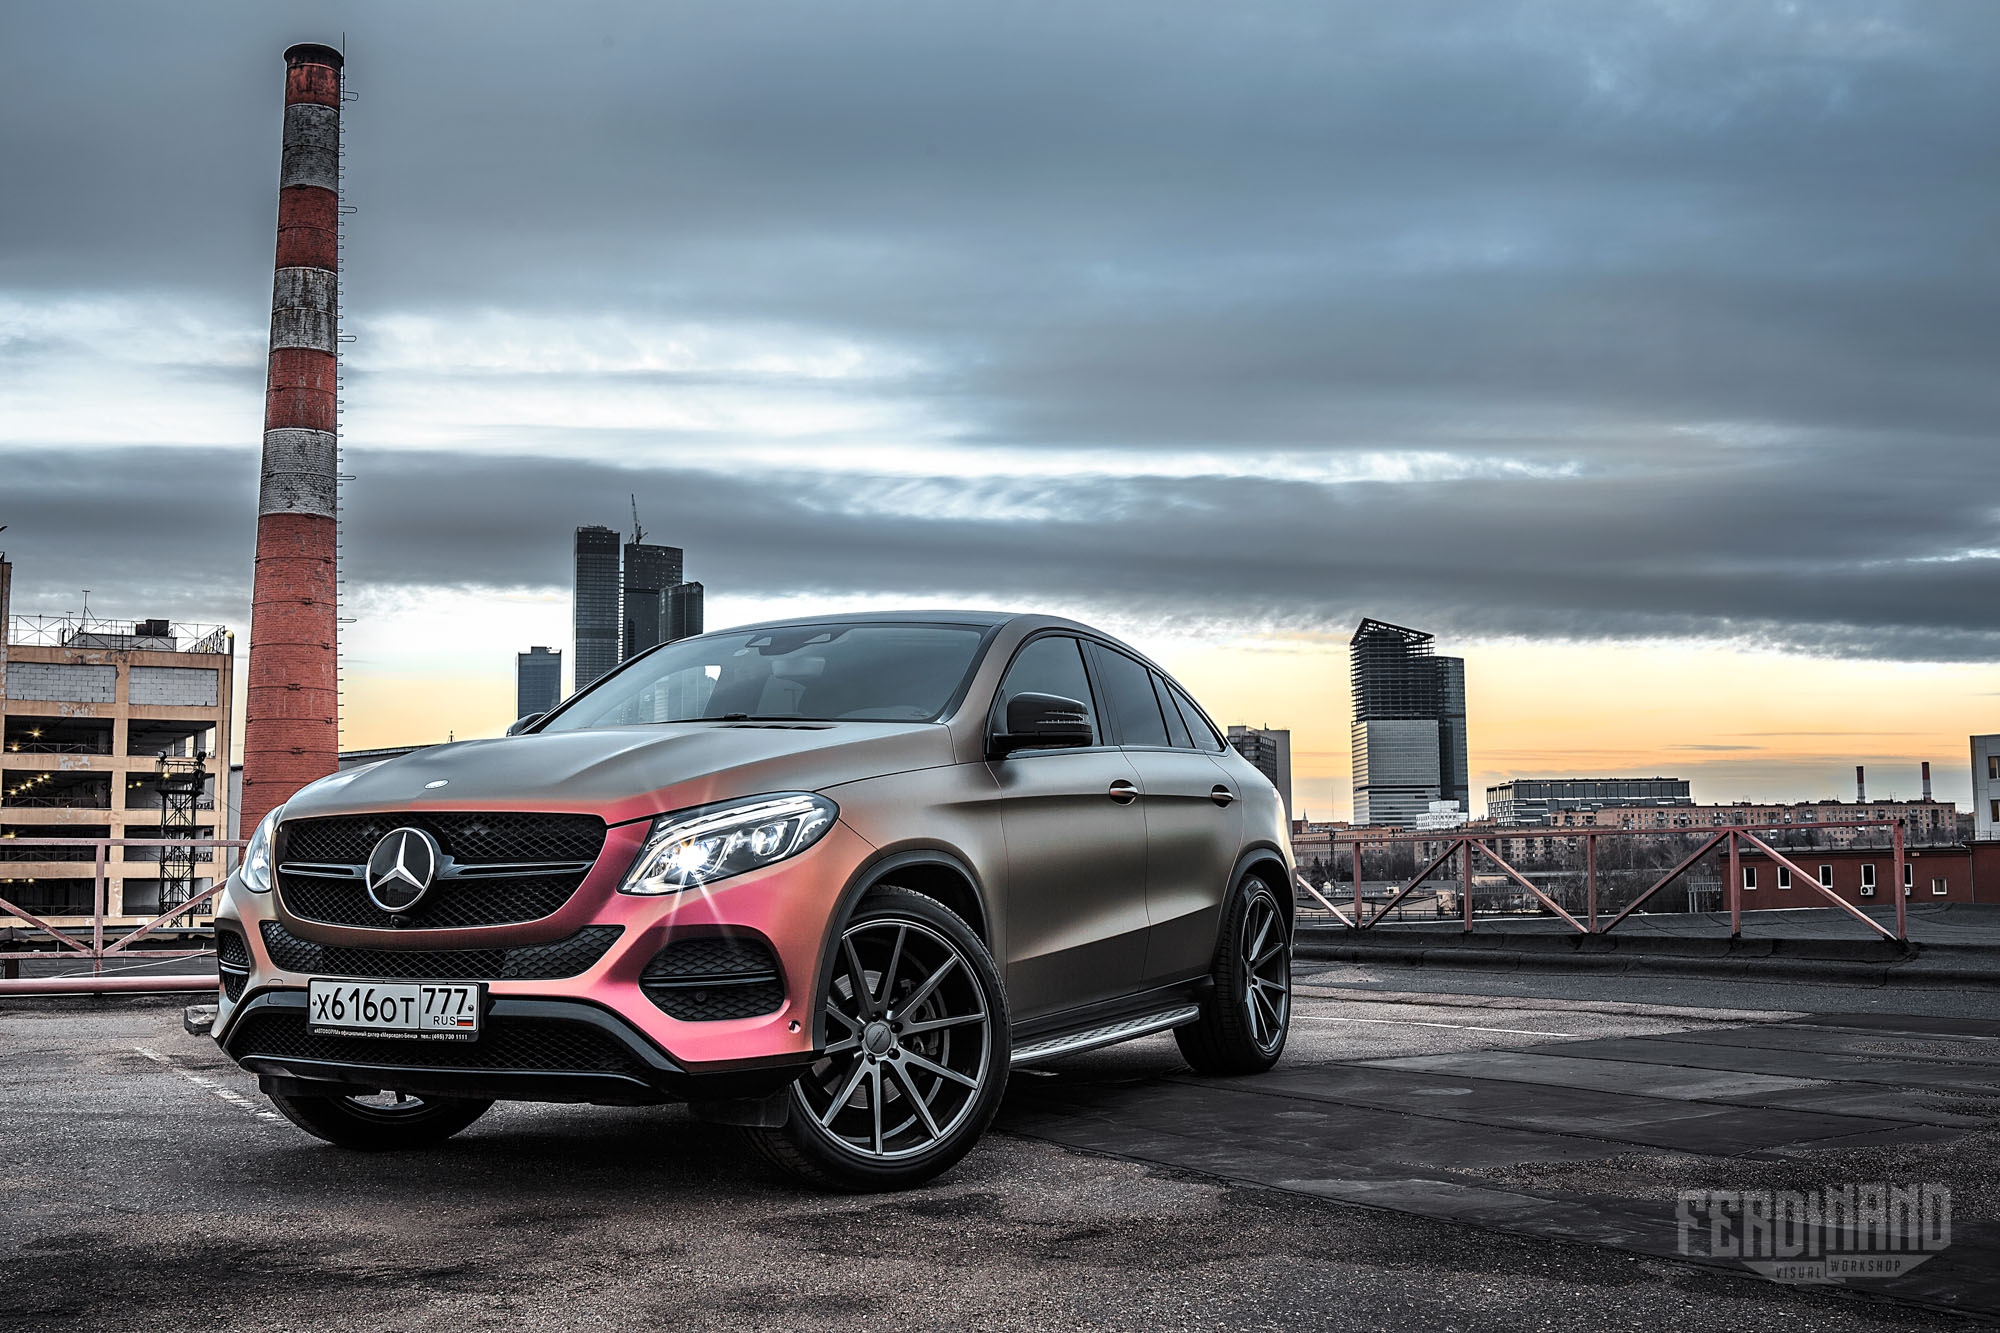 gle mercedes coupe vossen wheels russian wrap flip benz combines w292 vfs1 benztuning changing tuning autoevolution feel merc rate